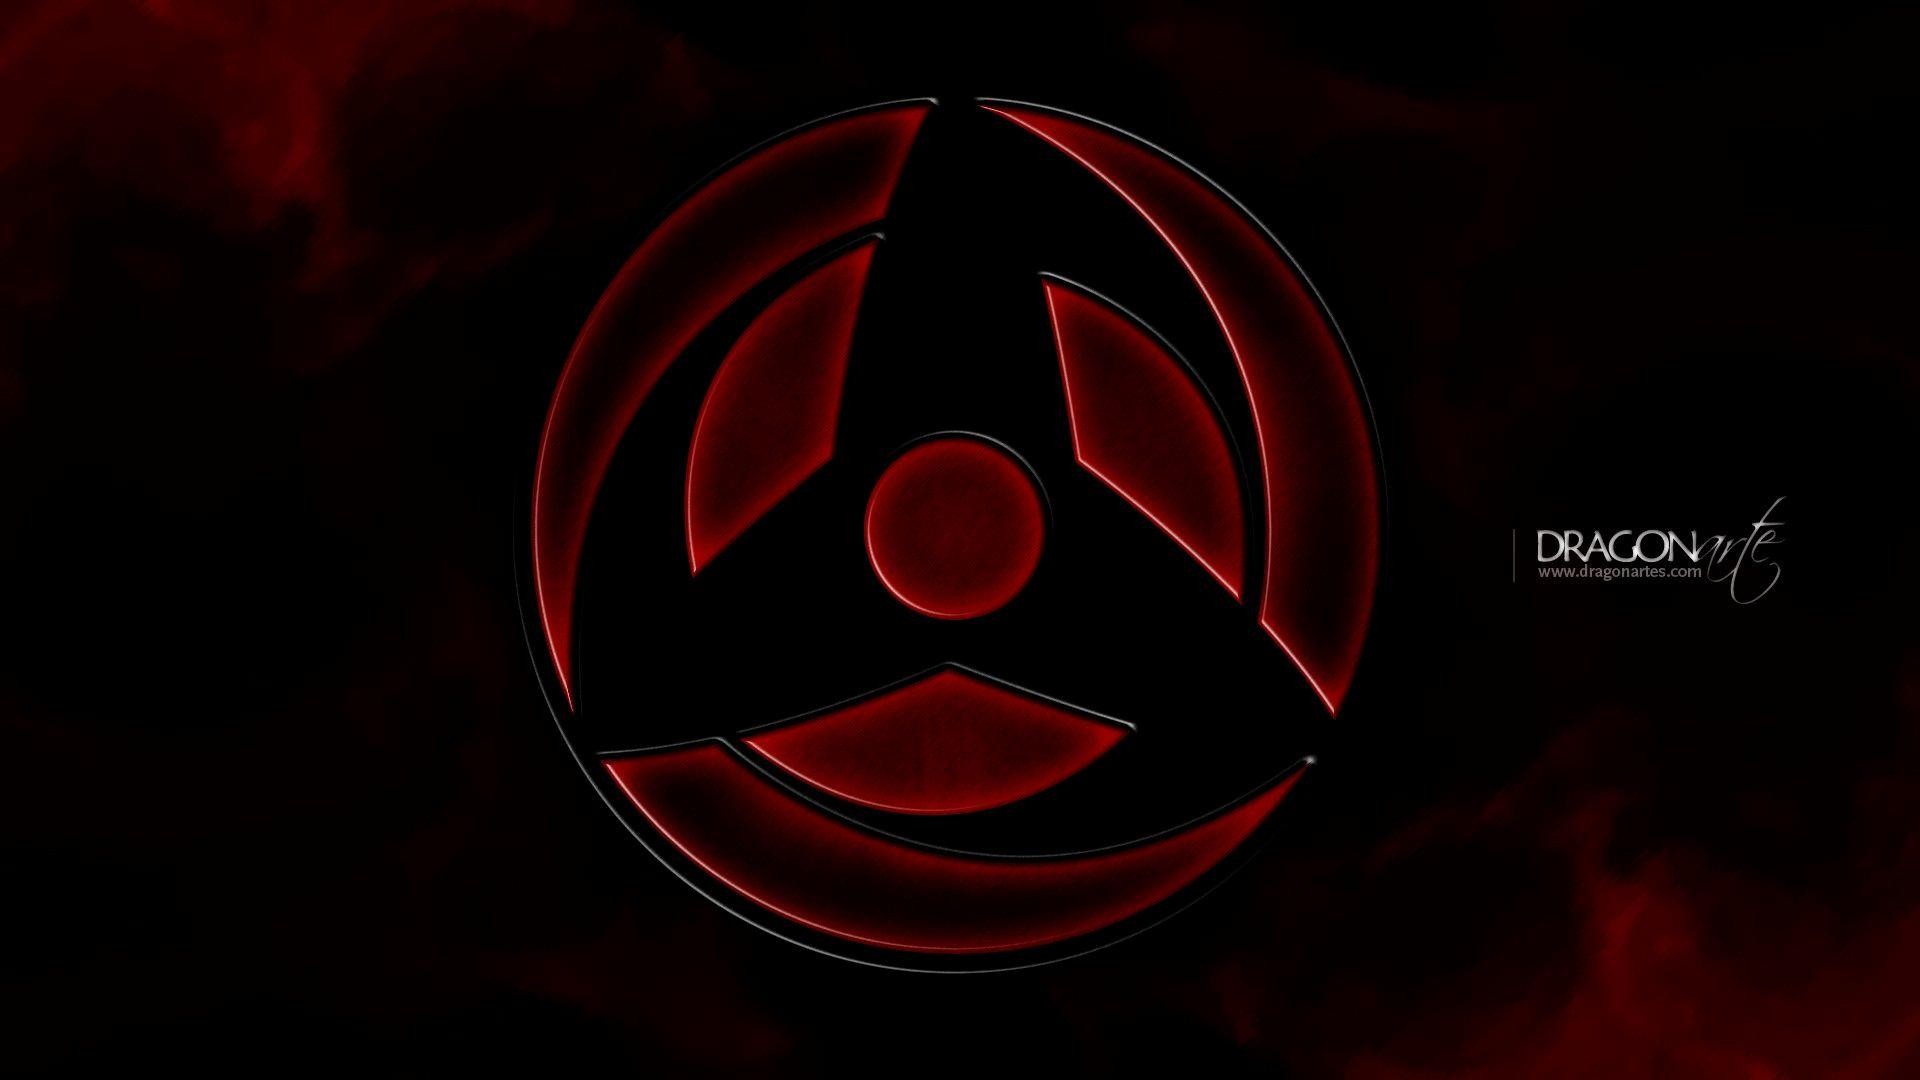 sharingan live wallpaper android apps on google play 1920a—1080